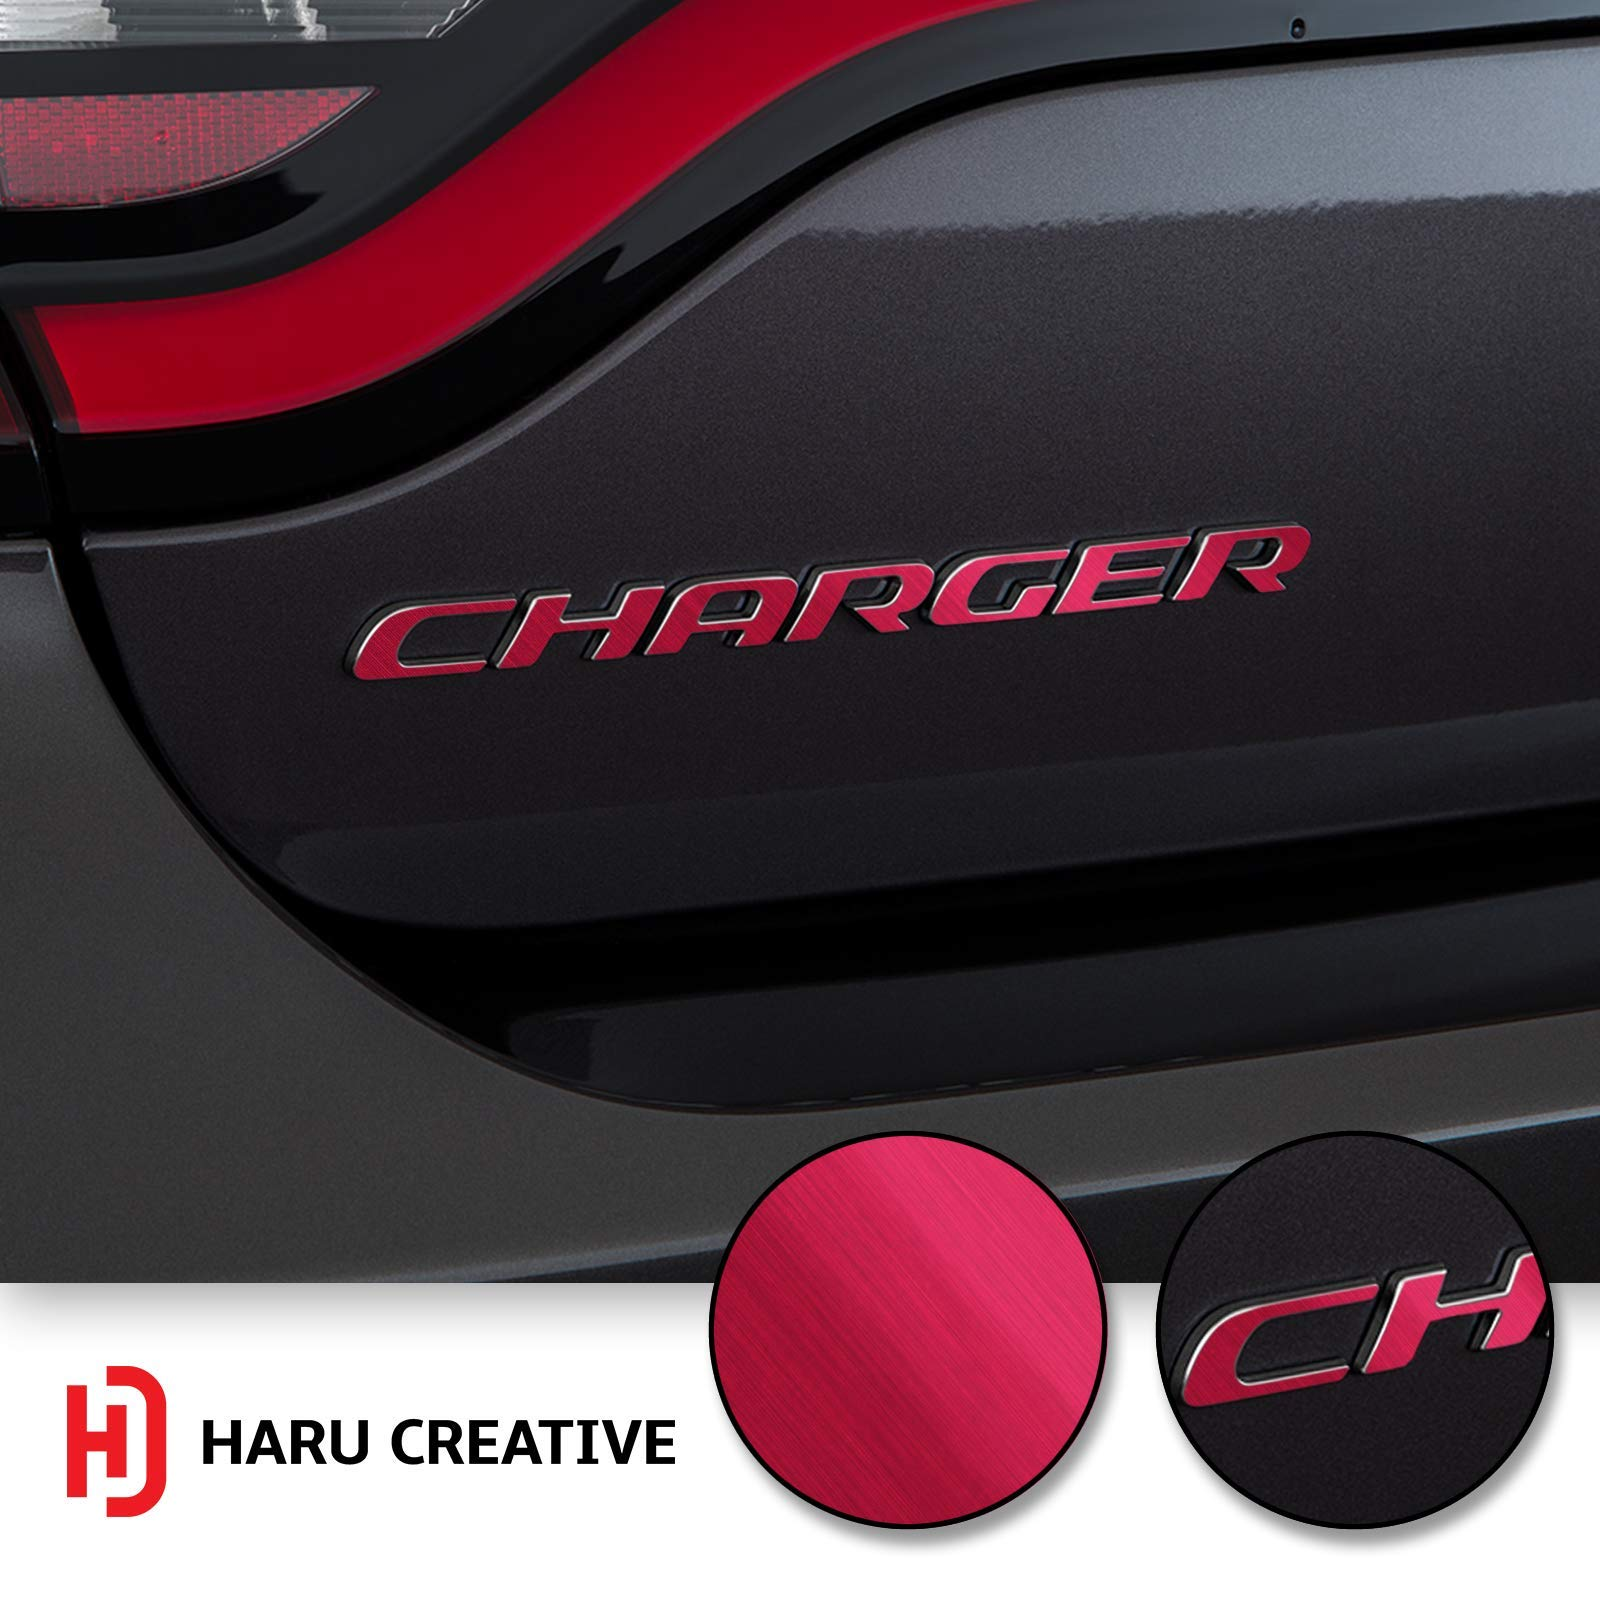 Metallic Matte Chrome Red Loyo Haru Creative Rear Bumper Trunk Emblem Overlay Vinyl Car Decal Sticker Compatible with and Fits Dodge Charger 2015 2016 2017 2018 2019